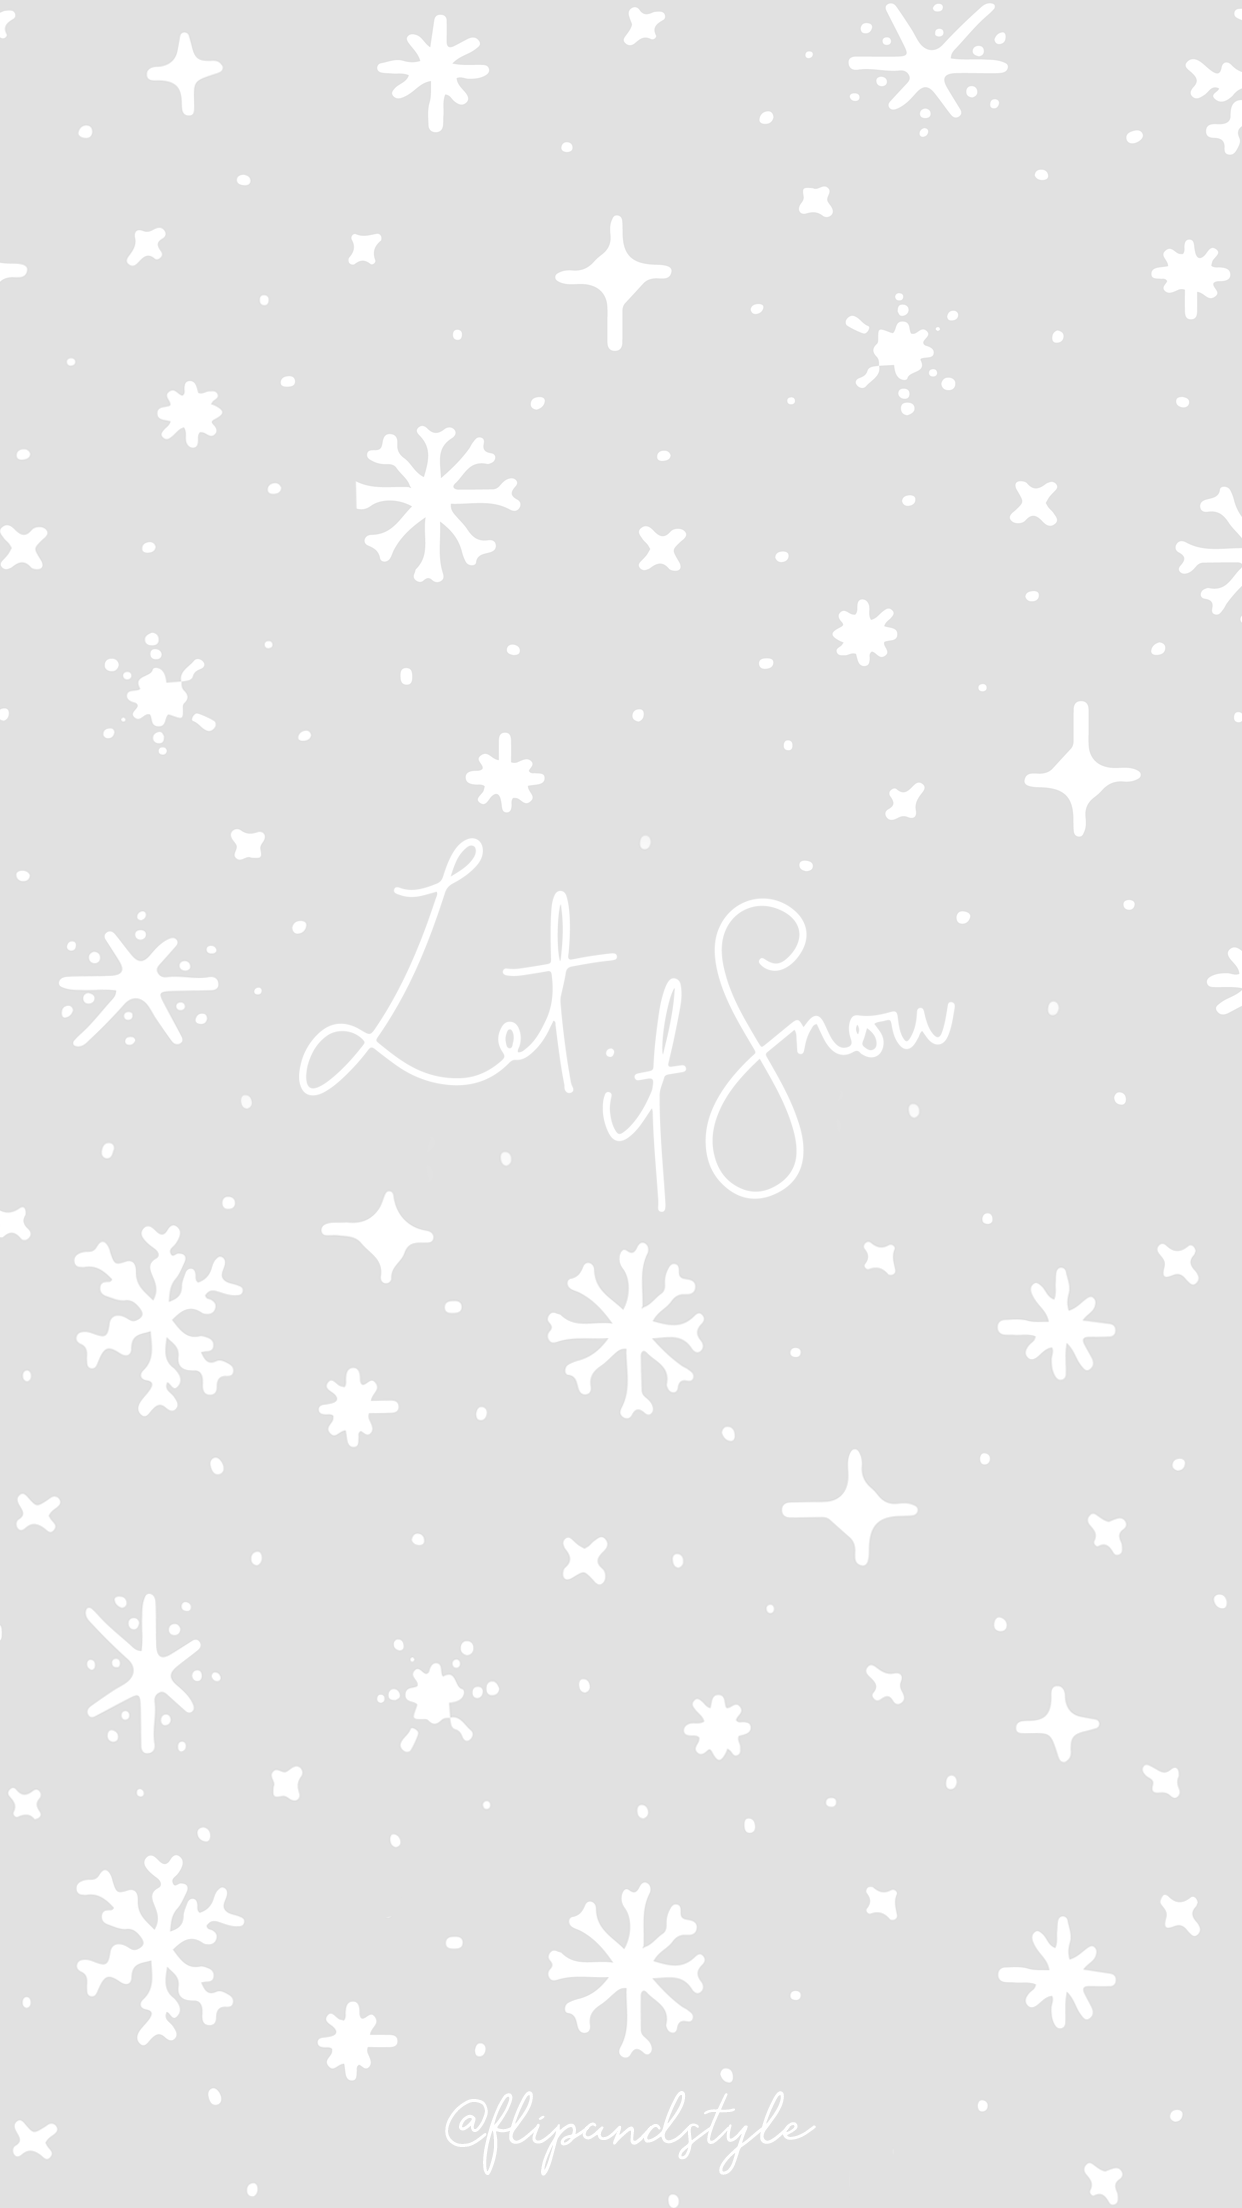 Free Wallpapers Backgrounds Christmas Festive By Flip And Style Wallpaper Iphone Christmas Christmas Phone Wallpaper Xmas Wallpaper